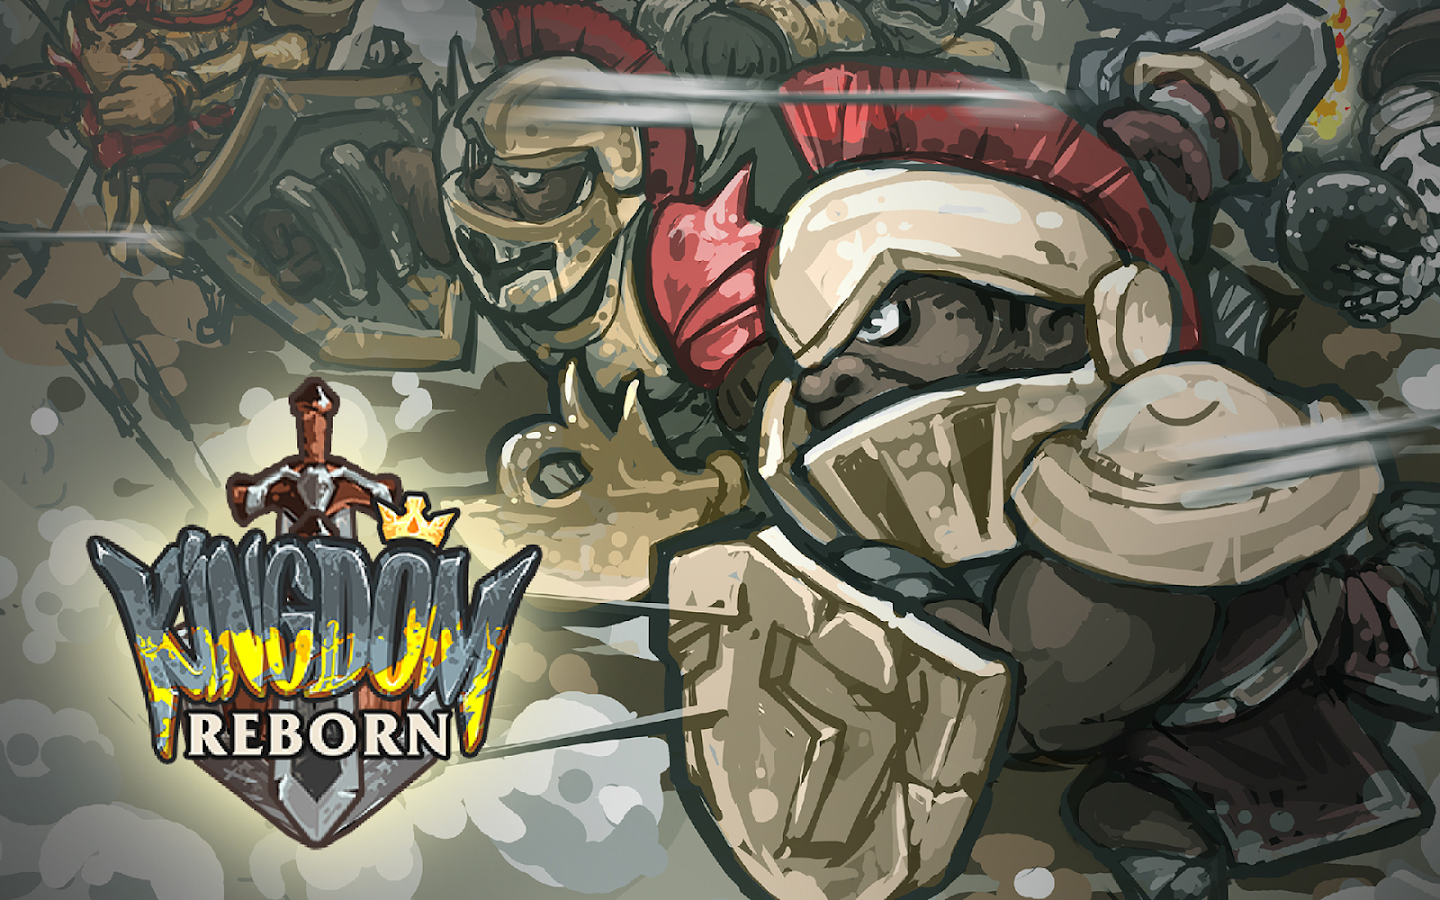 Kingdom Reborn - Art of War Screenshot 5